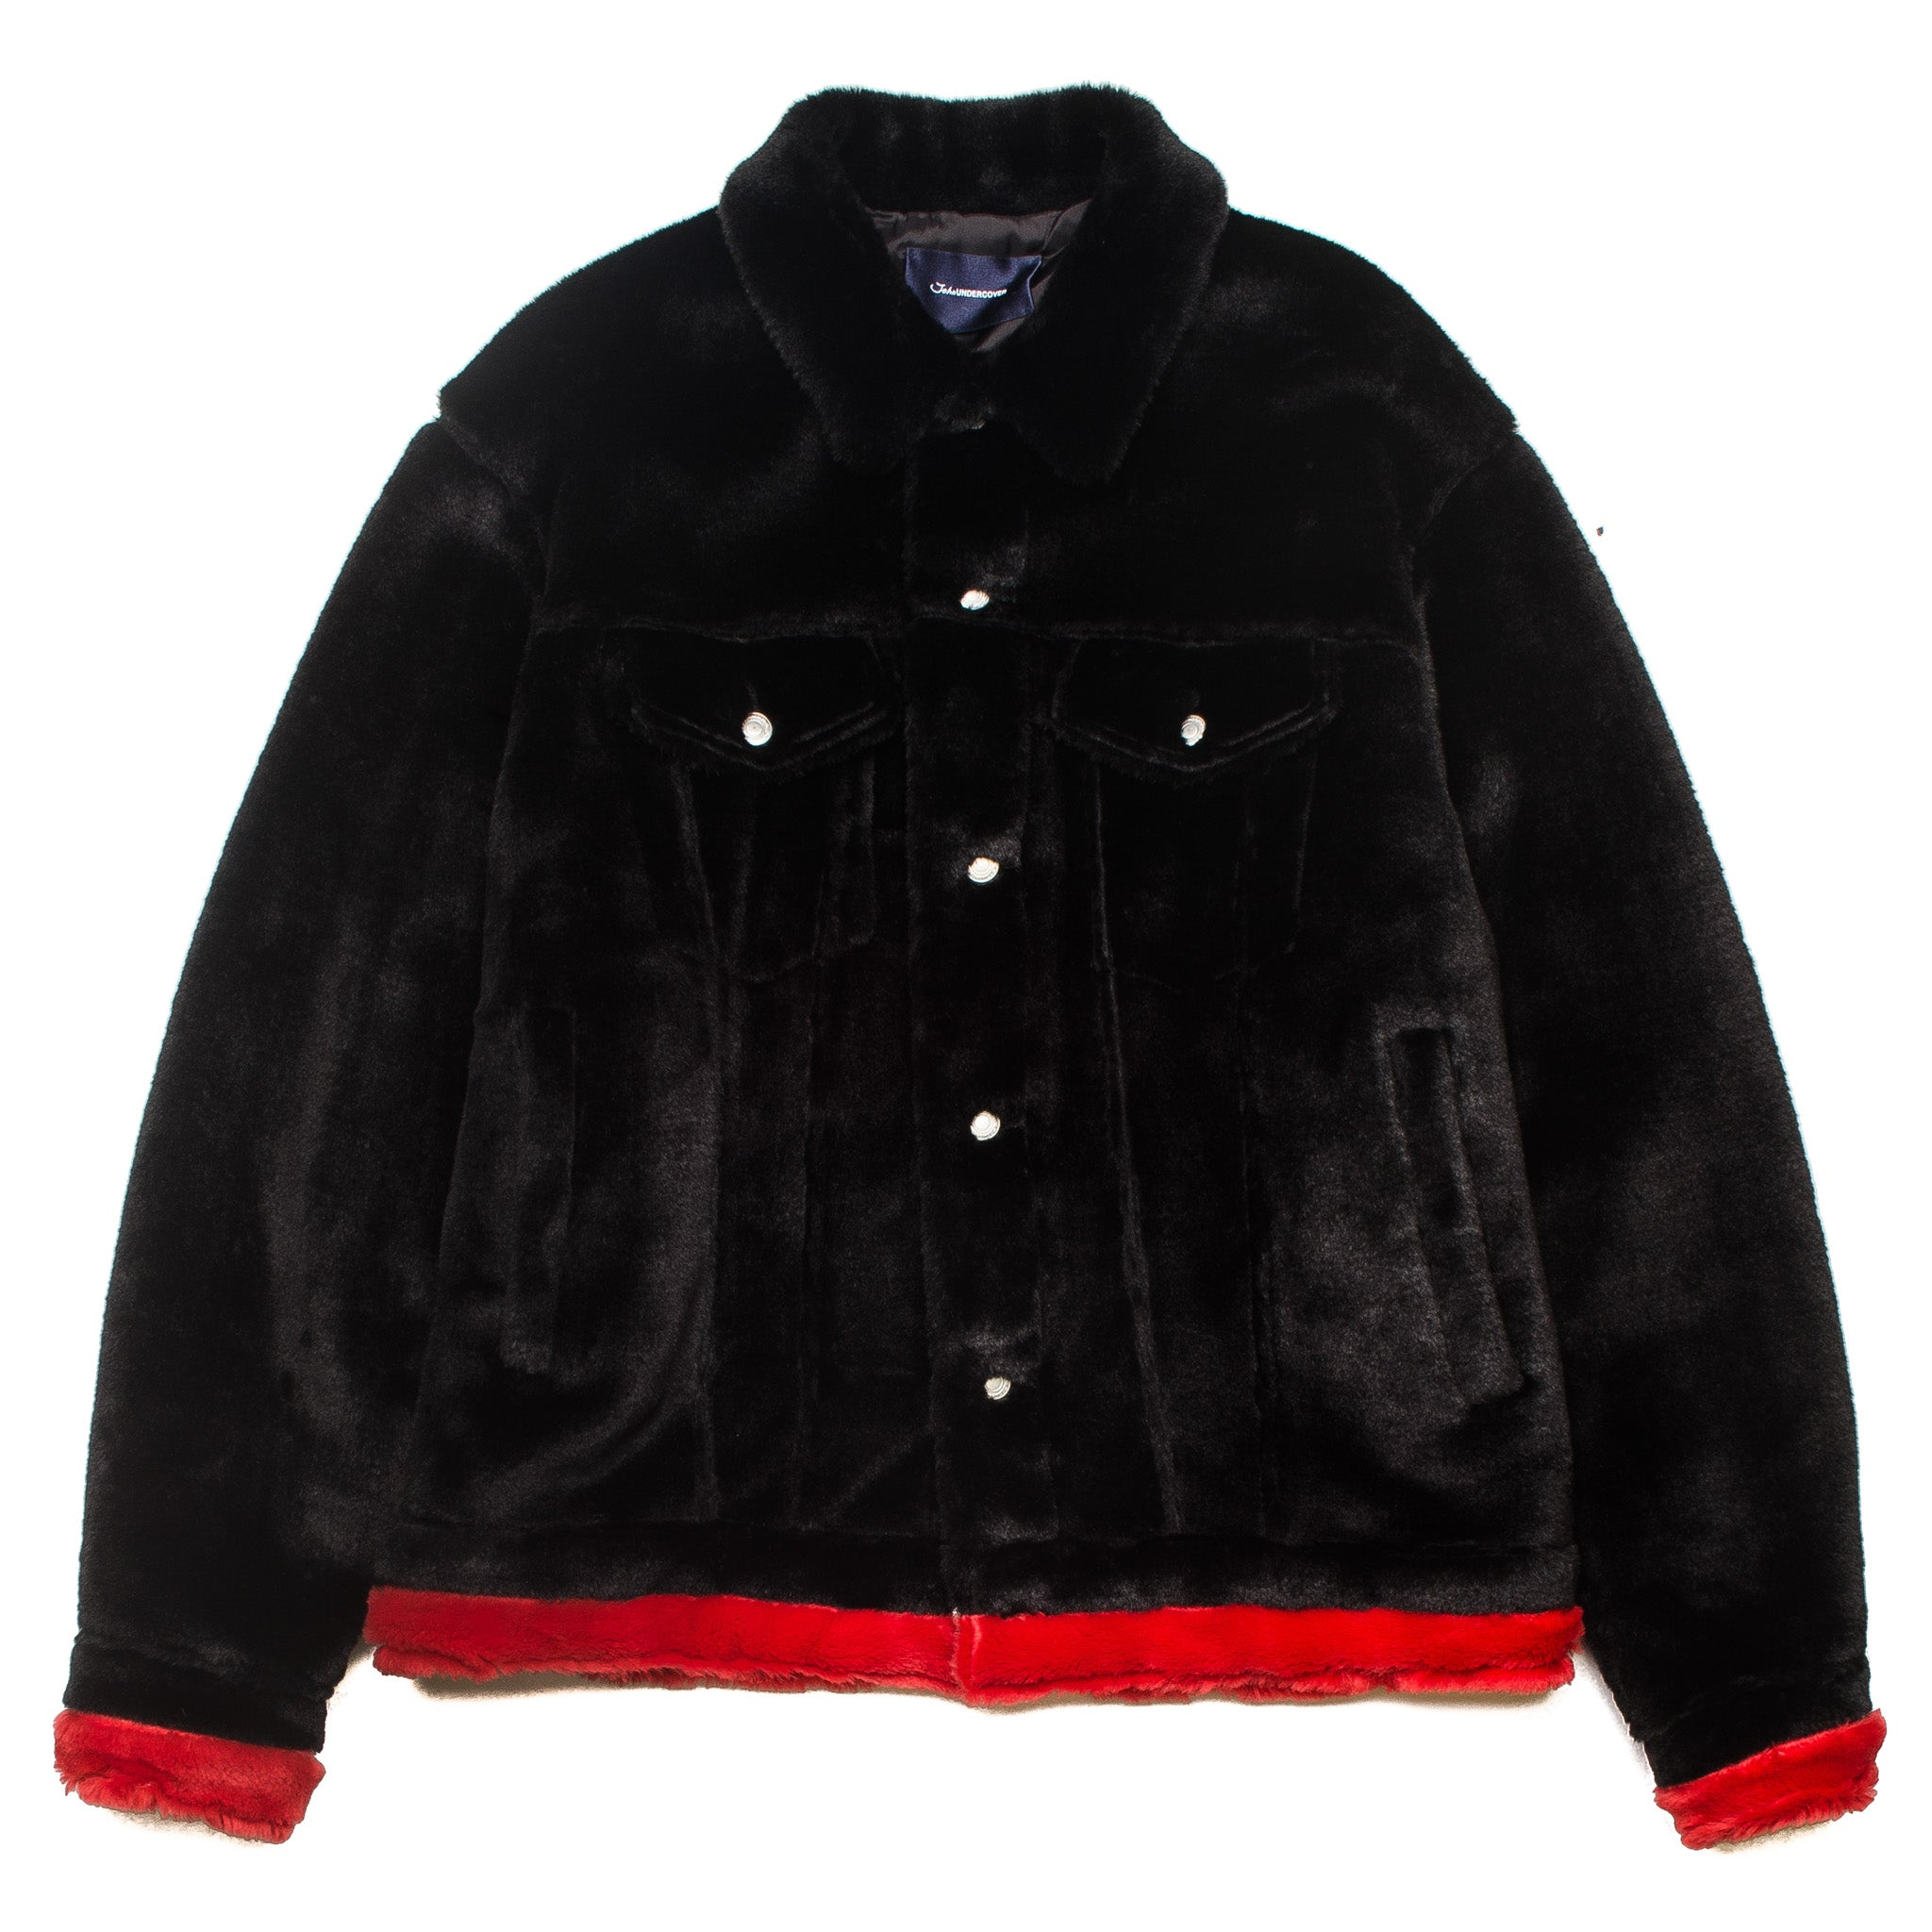 Big Trucker Jacket JUV4205-1 Black